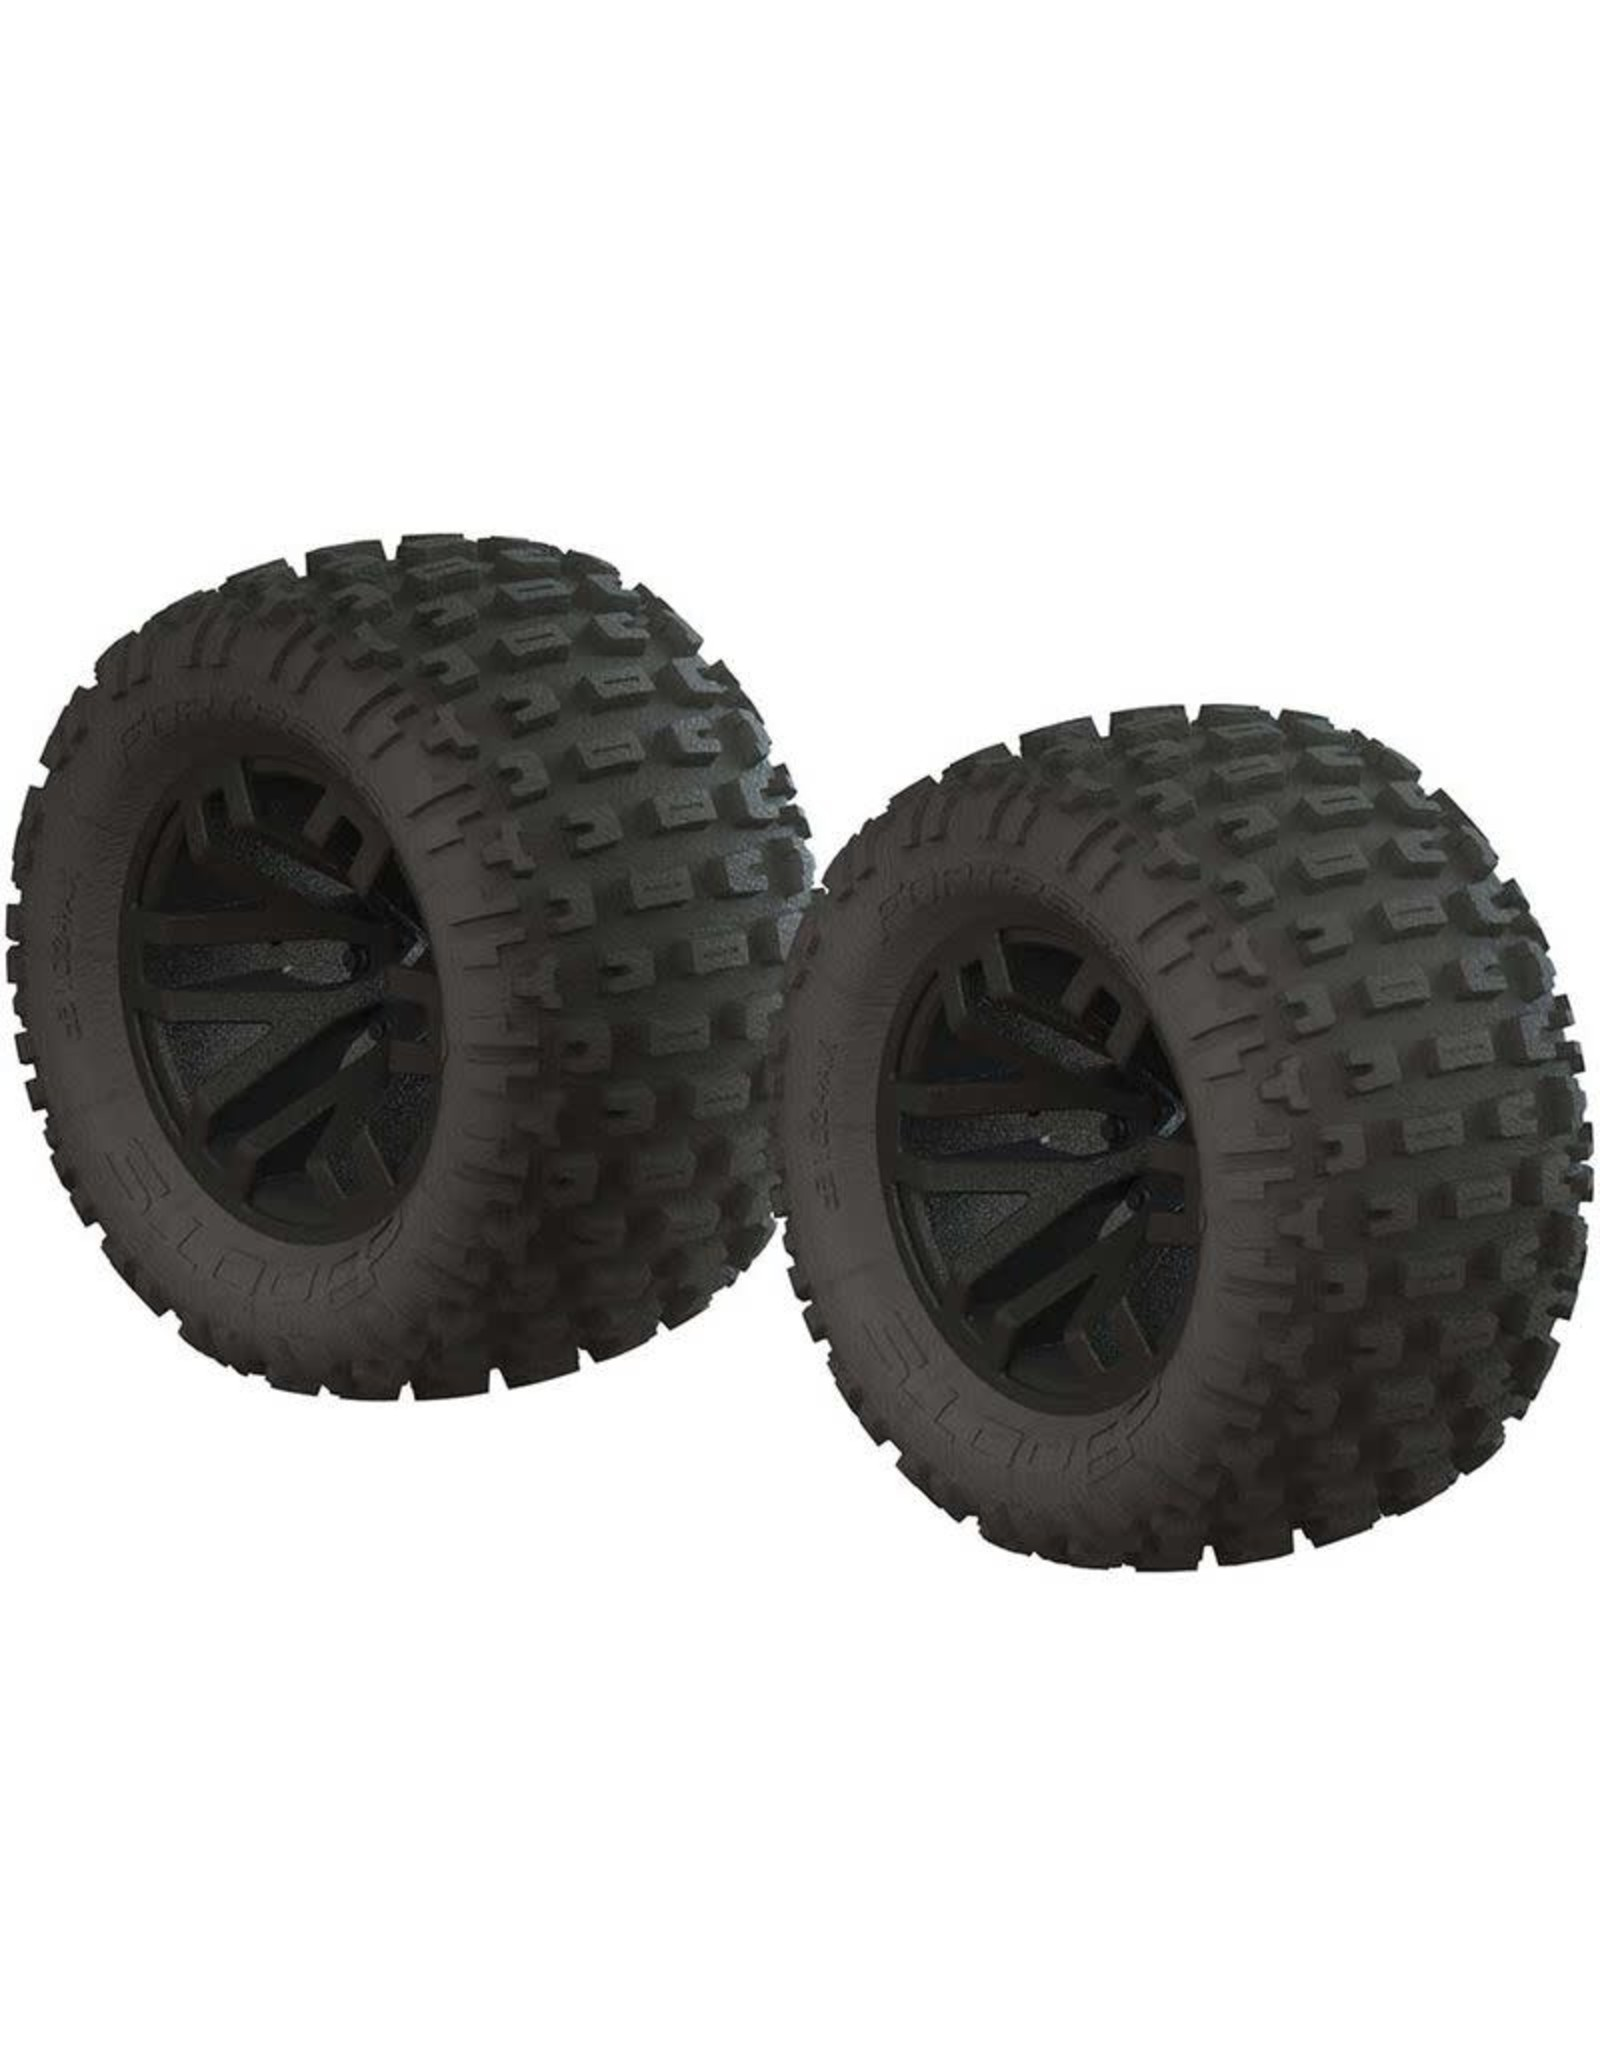 ARRMA 1/10 dBoots Fortress MT 2.2/3.0 Pre-Mounted Tires, 14mm Hex, Black (2)